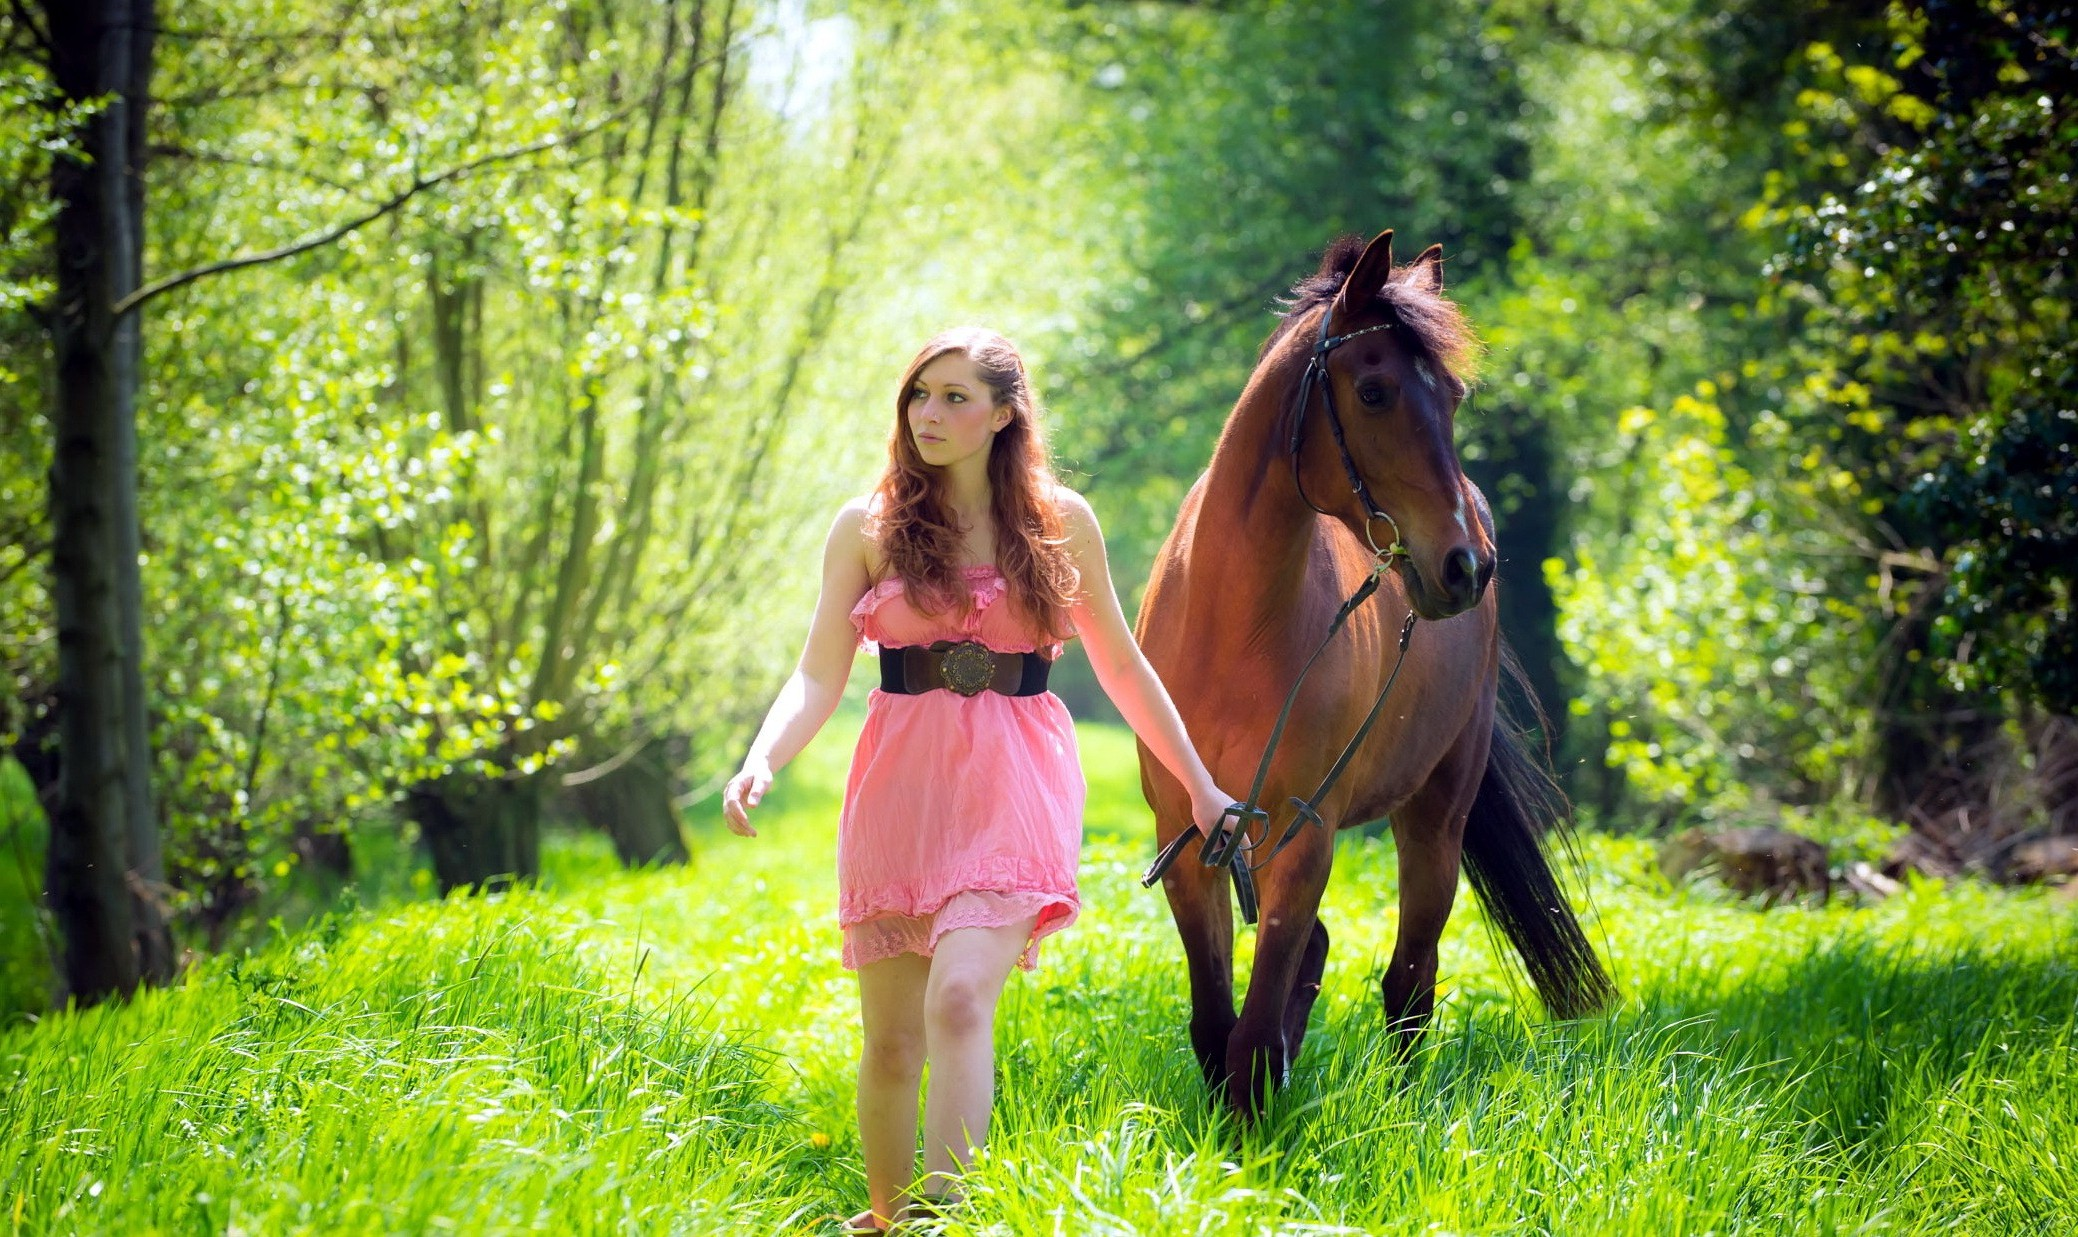 Hd Fantasy Girl Wallpapers 1080p Women With Horse Hd Girls 4k Wallpapers Images